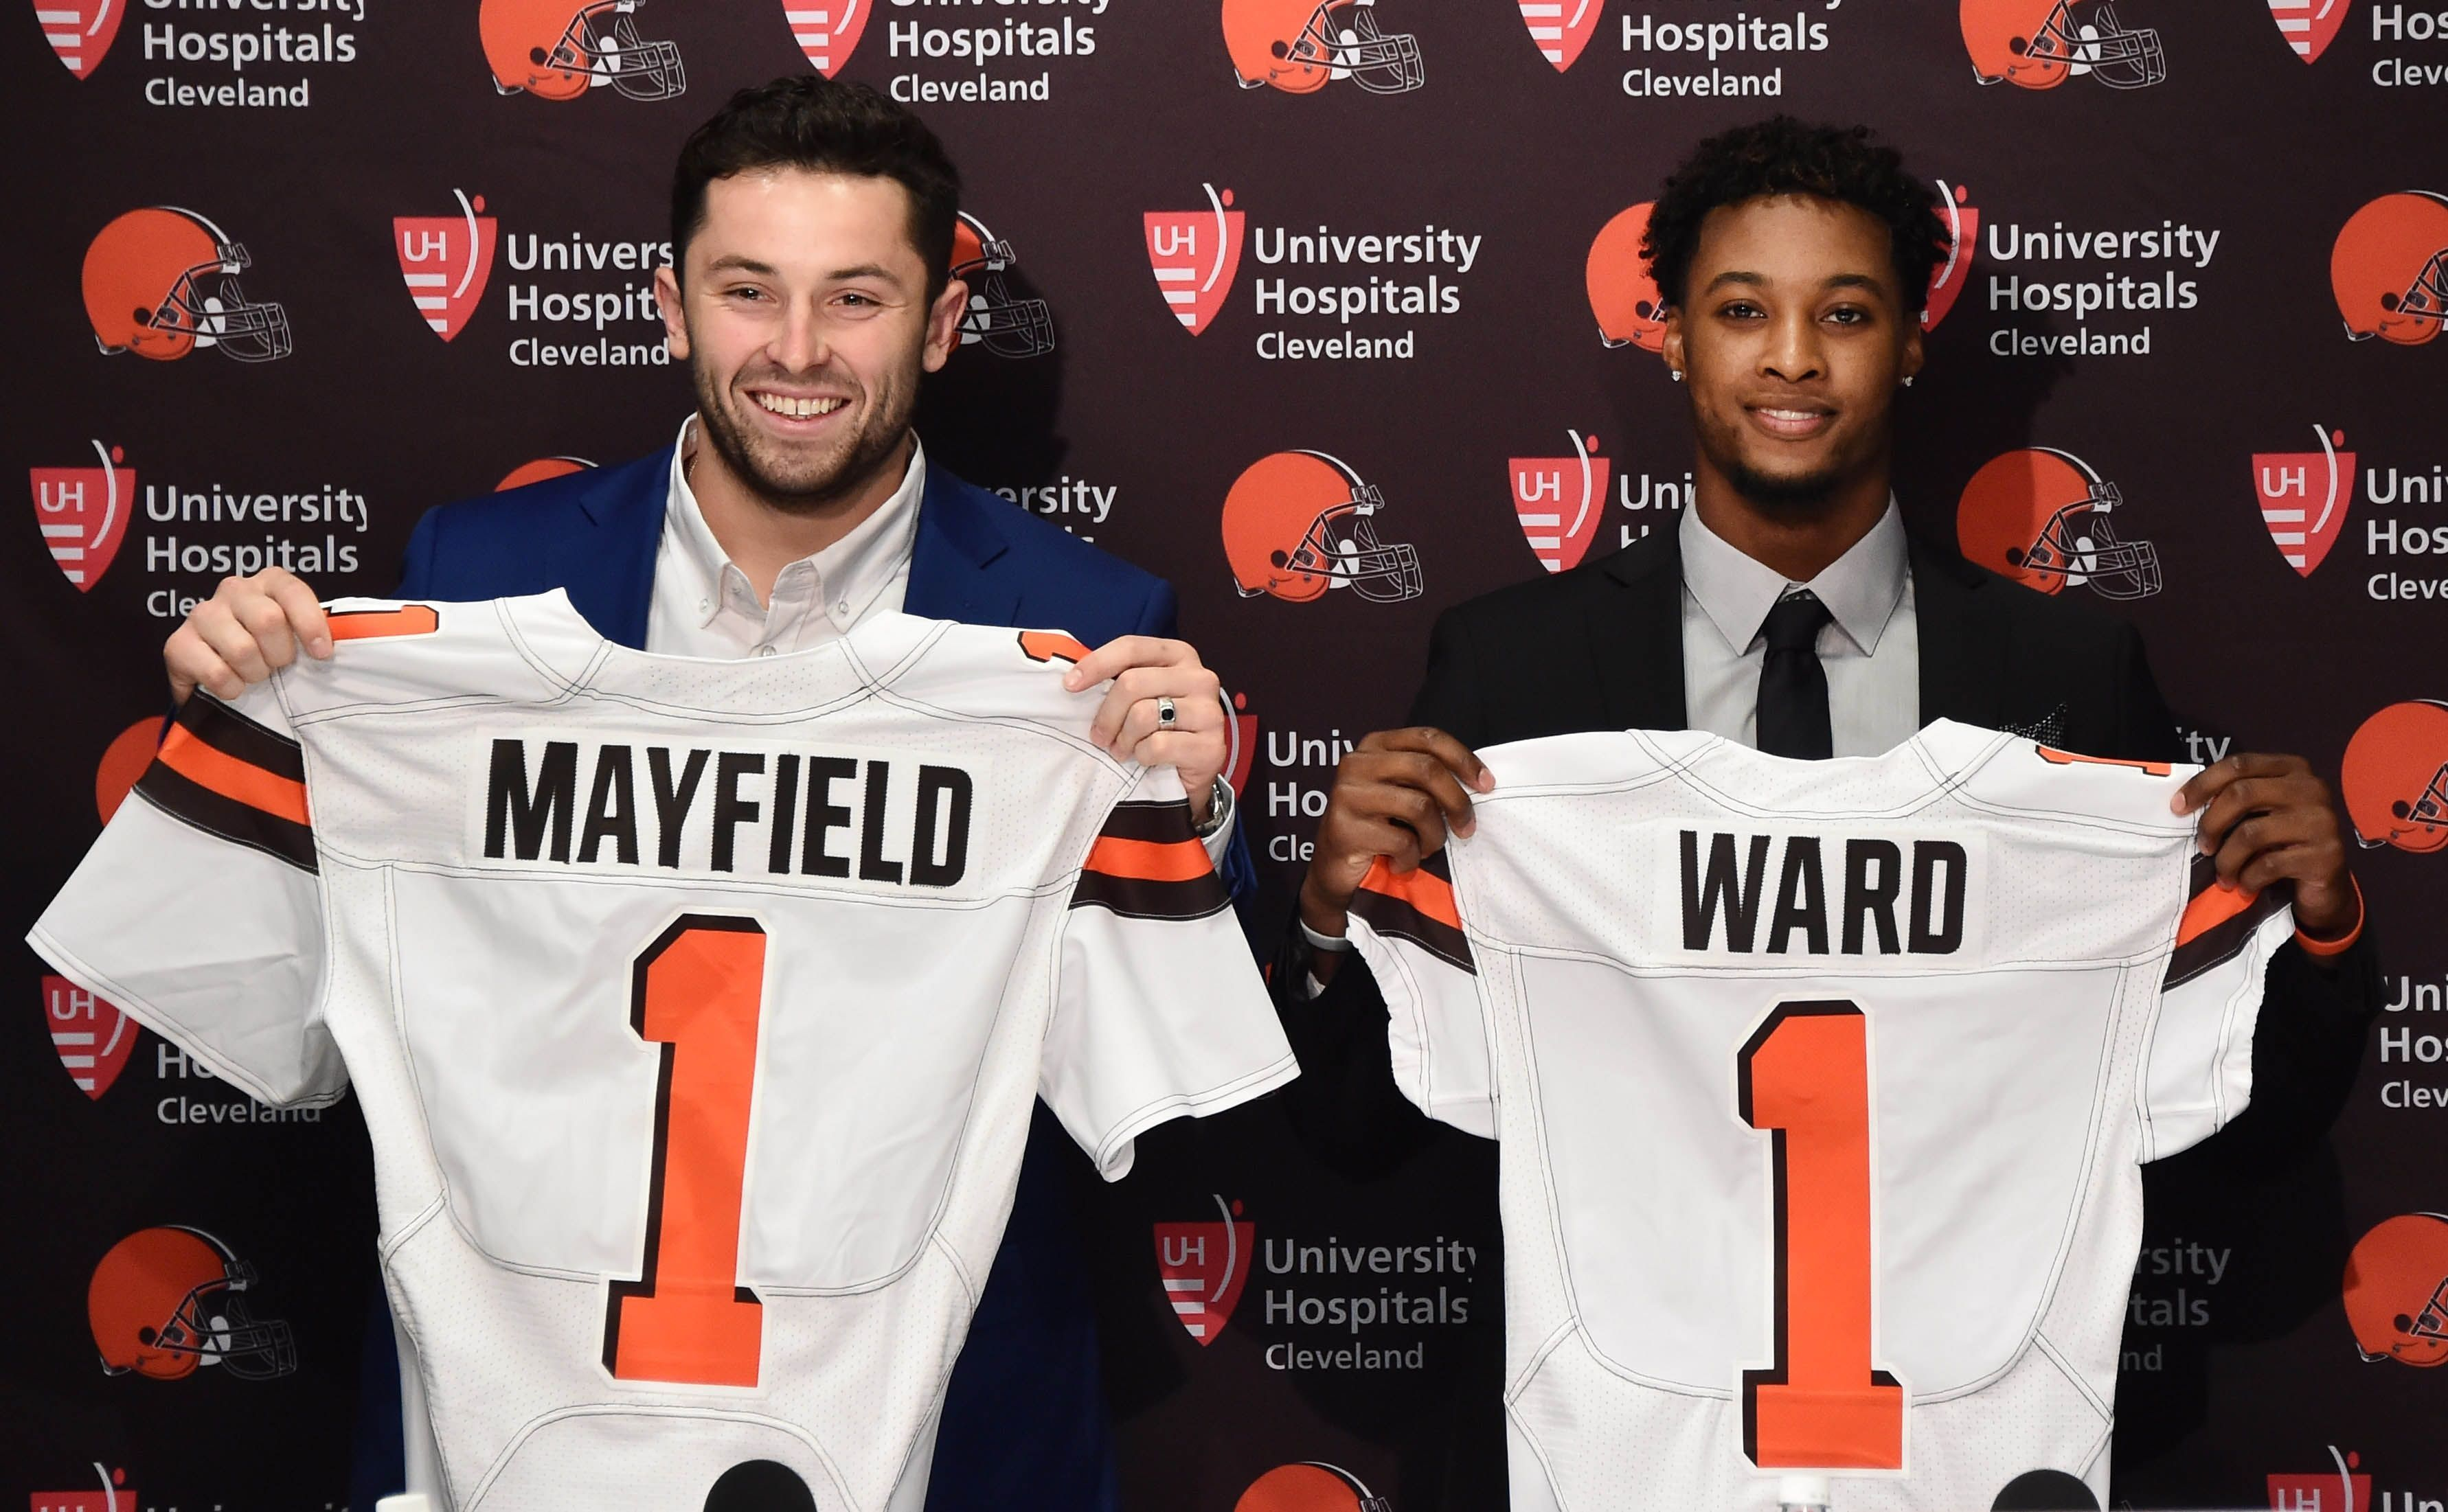 Starting with Browns' Baker Mayfield most intriguing story